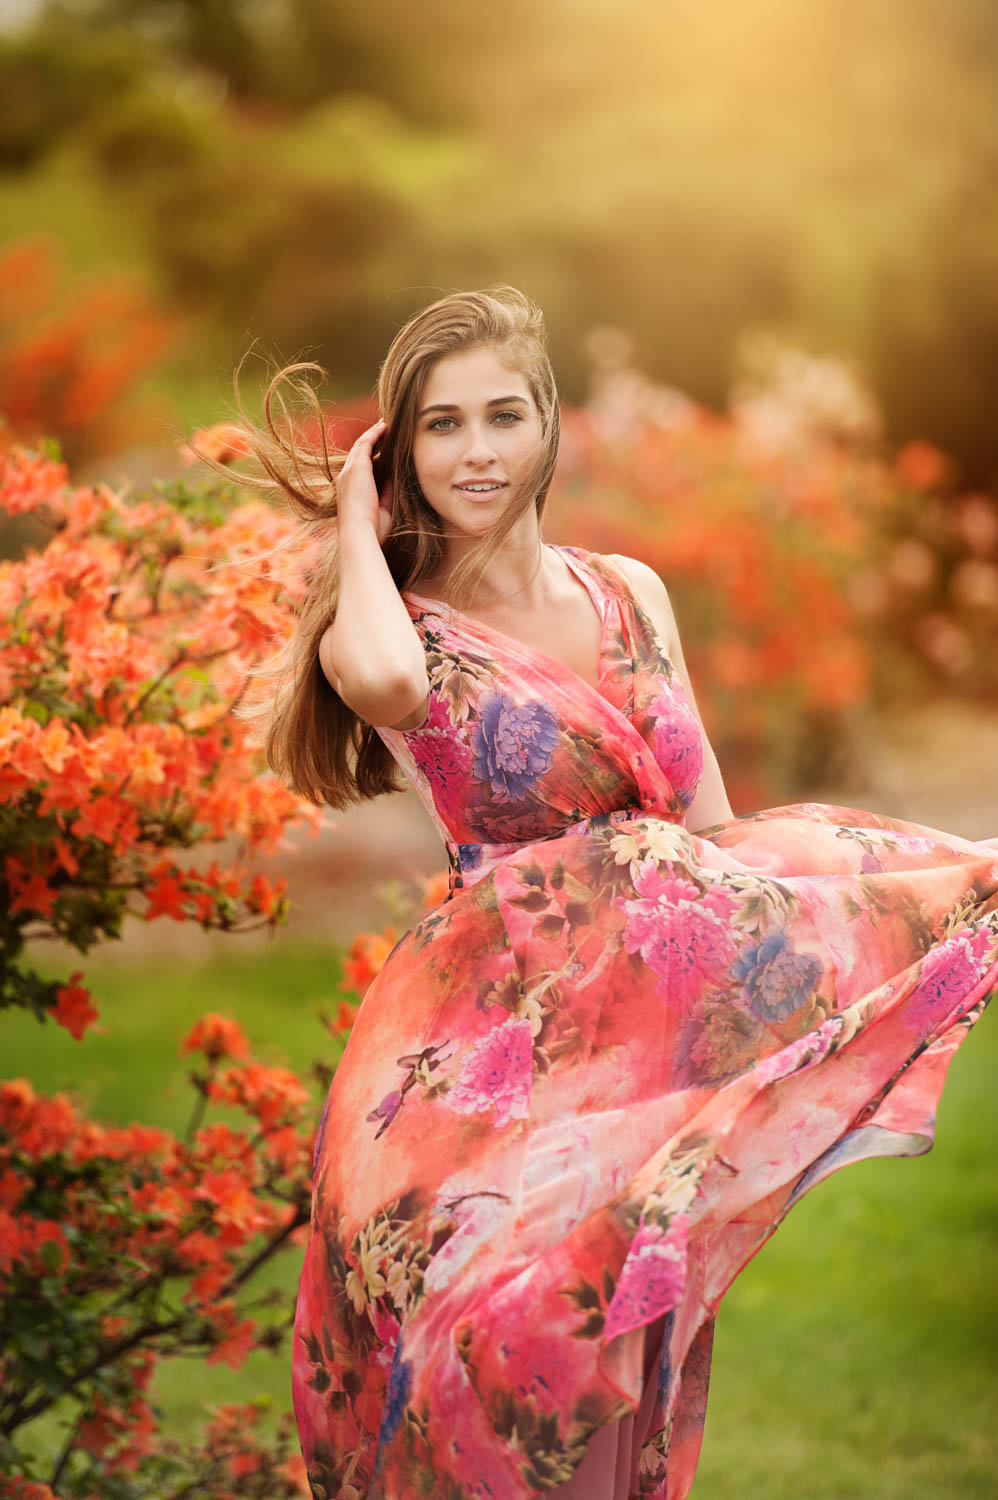 Colorful senior picture of girl with flowers